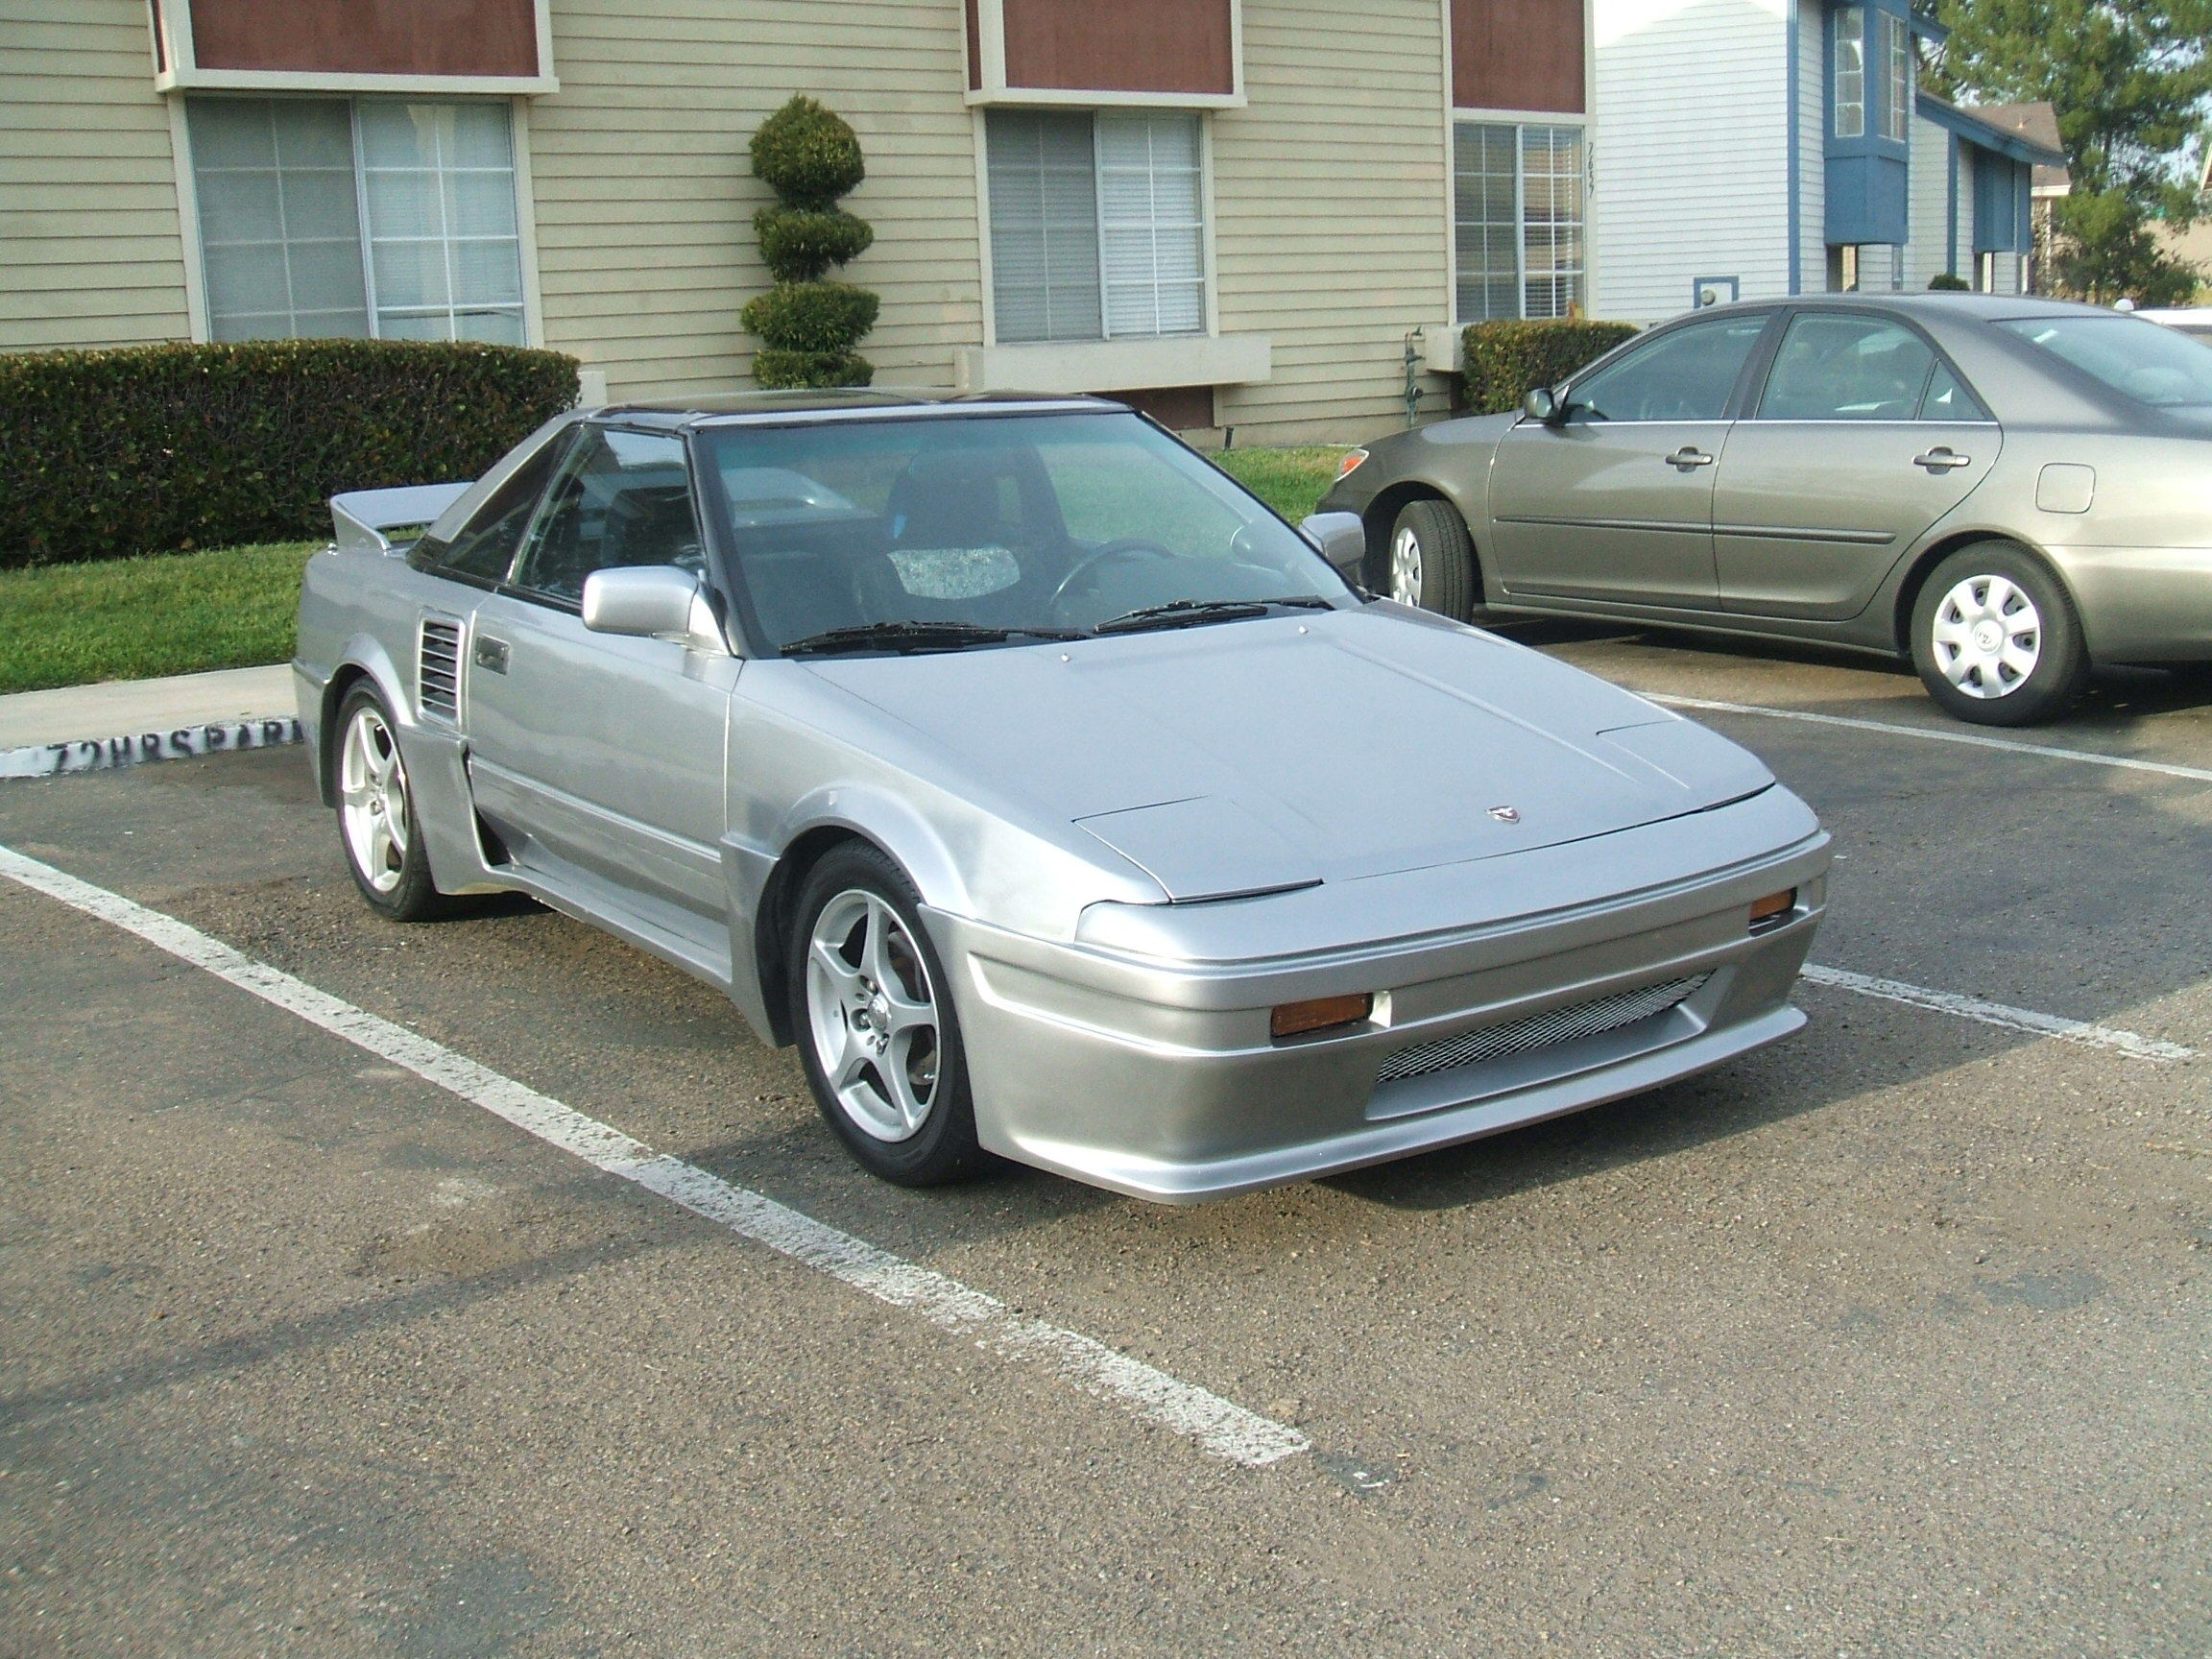 jaynh 1988 Toyota MR2 13051243